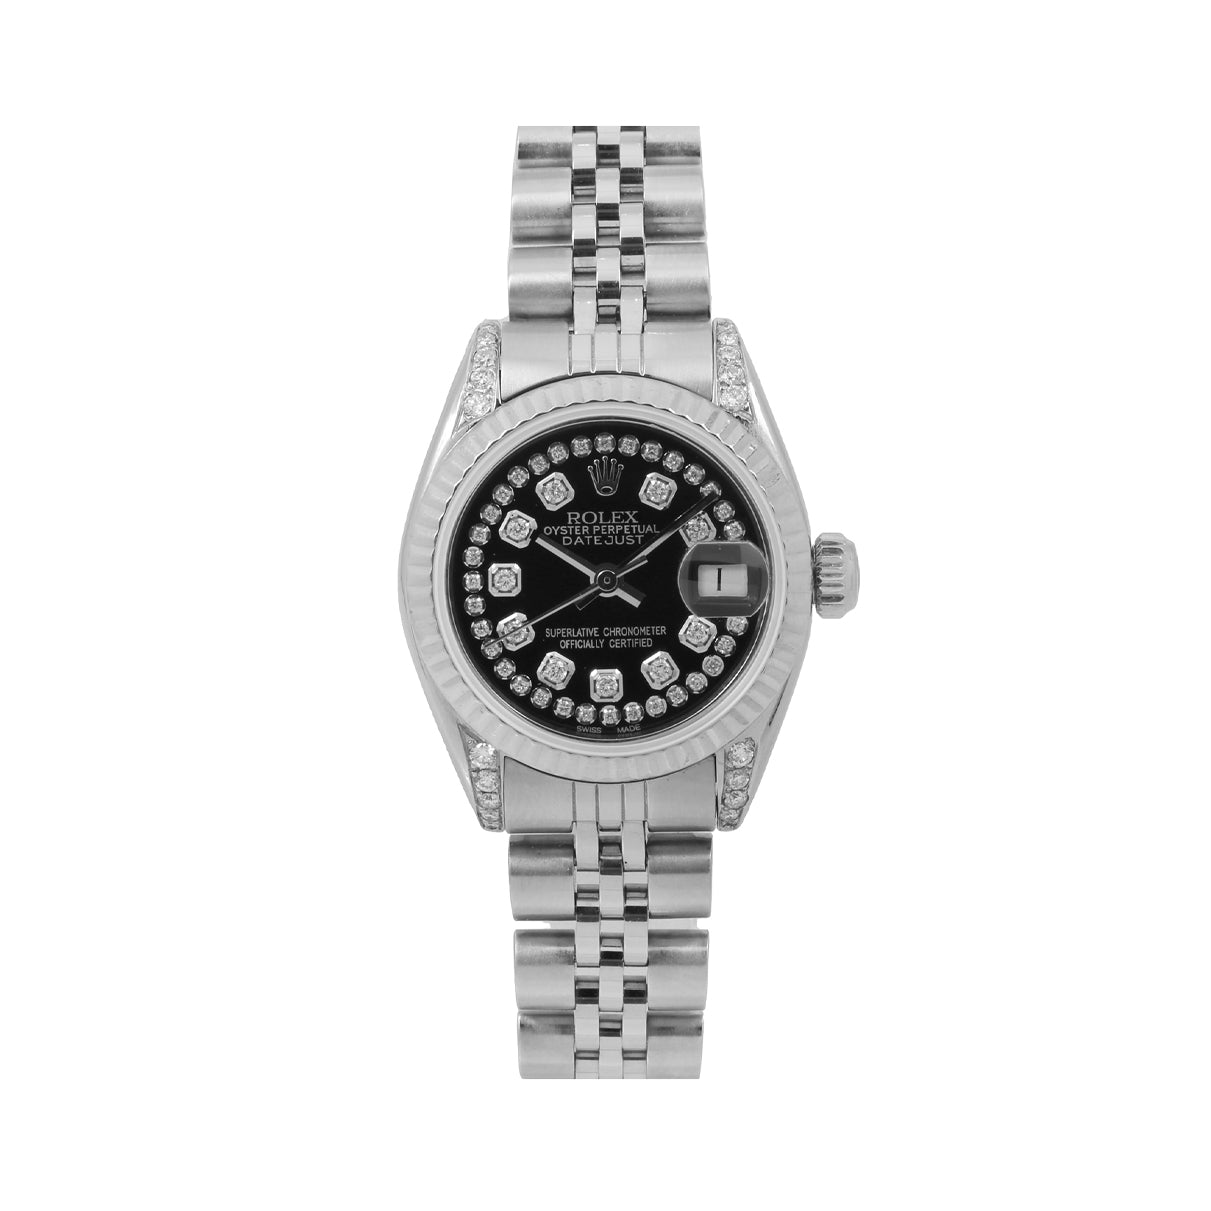 Rolex Datejust Diamond Watch, 26mm, Black Diamond Dial With Stainless Steel Jubilee Bracelet